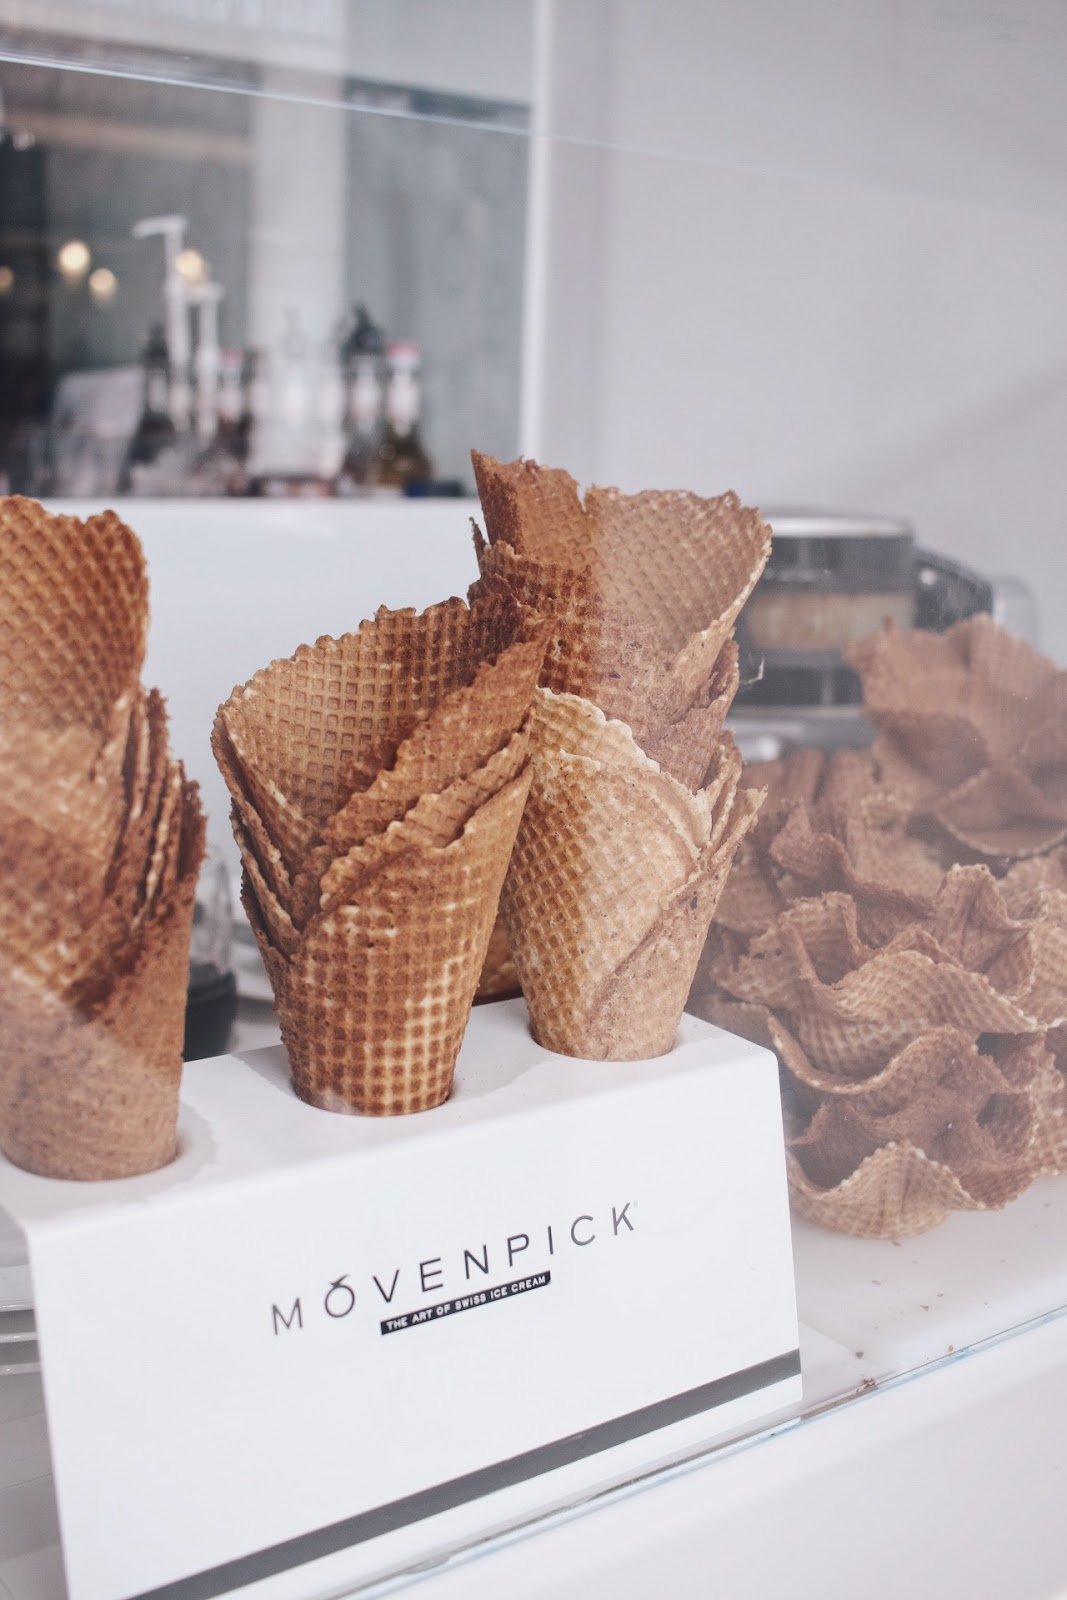 Lifestyle: The art of Swiss ice cream with Mövenpick